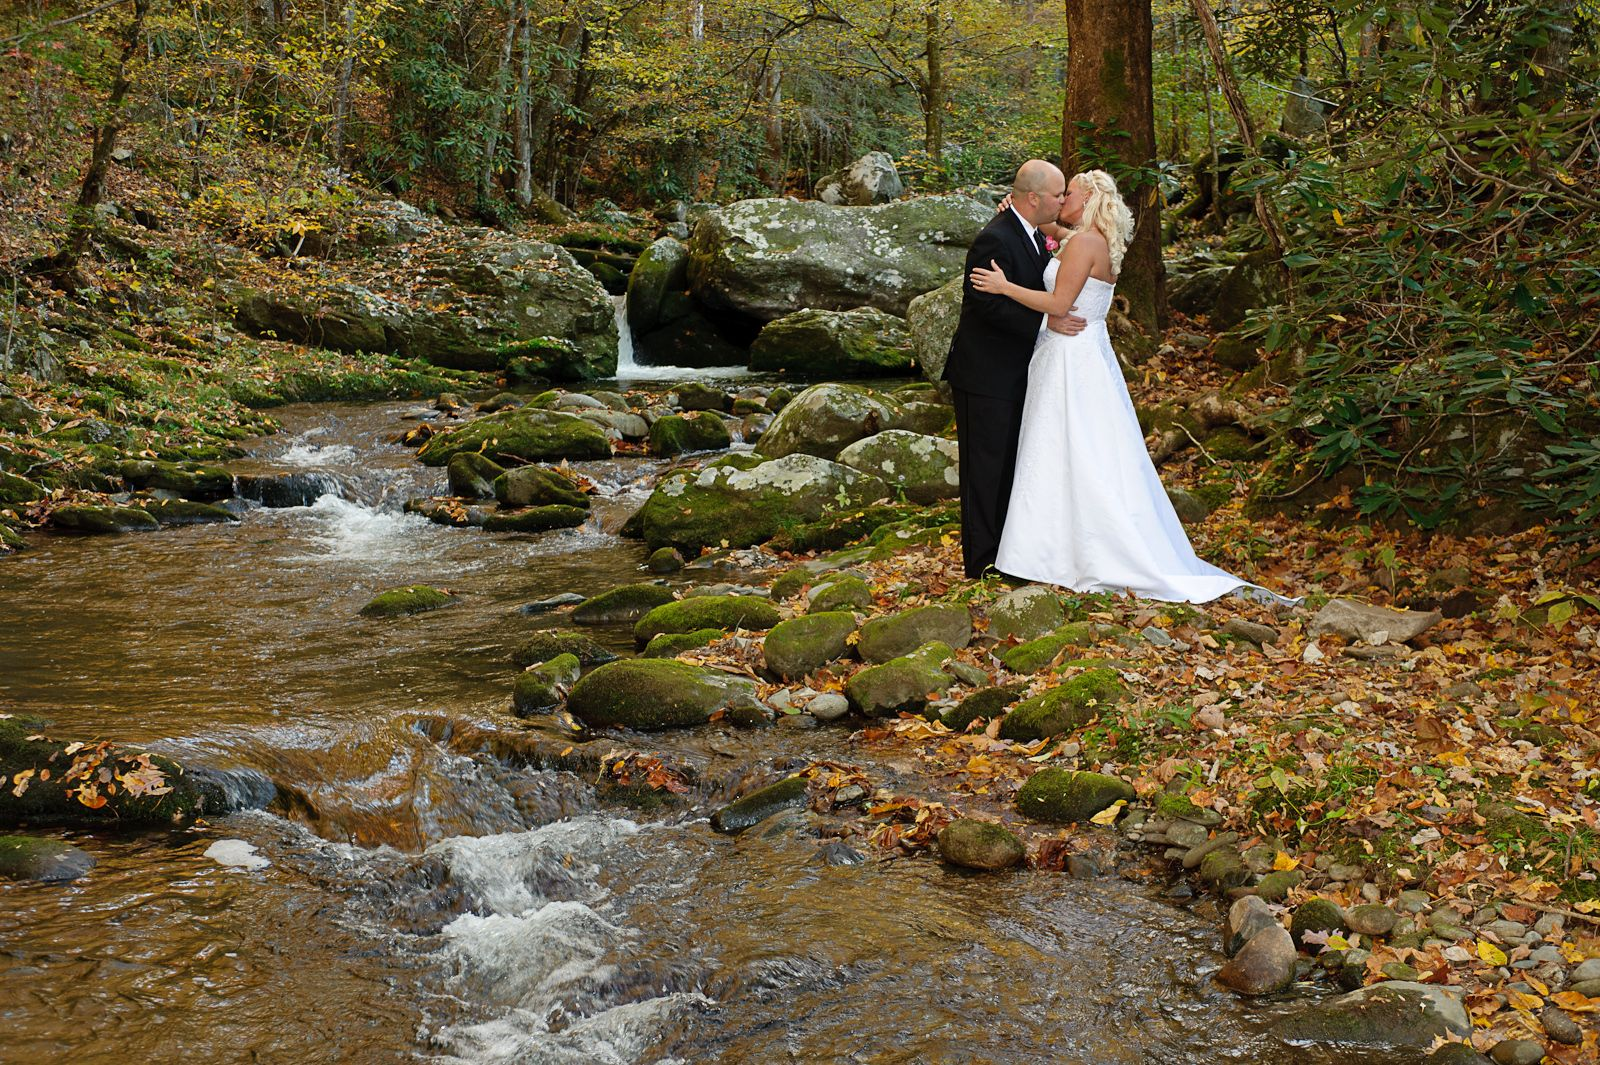 Weddings Photography Gatlinburg Tn Perfectweddingpics Com In 2020 Gatlinburg Weddings Smoky Mountain Wedding Mountain View Weddings